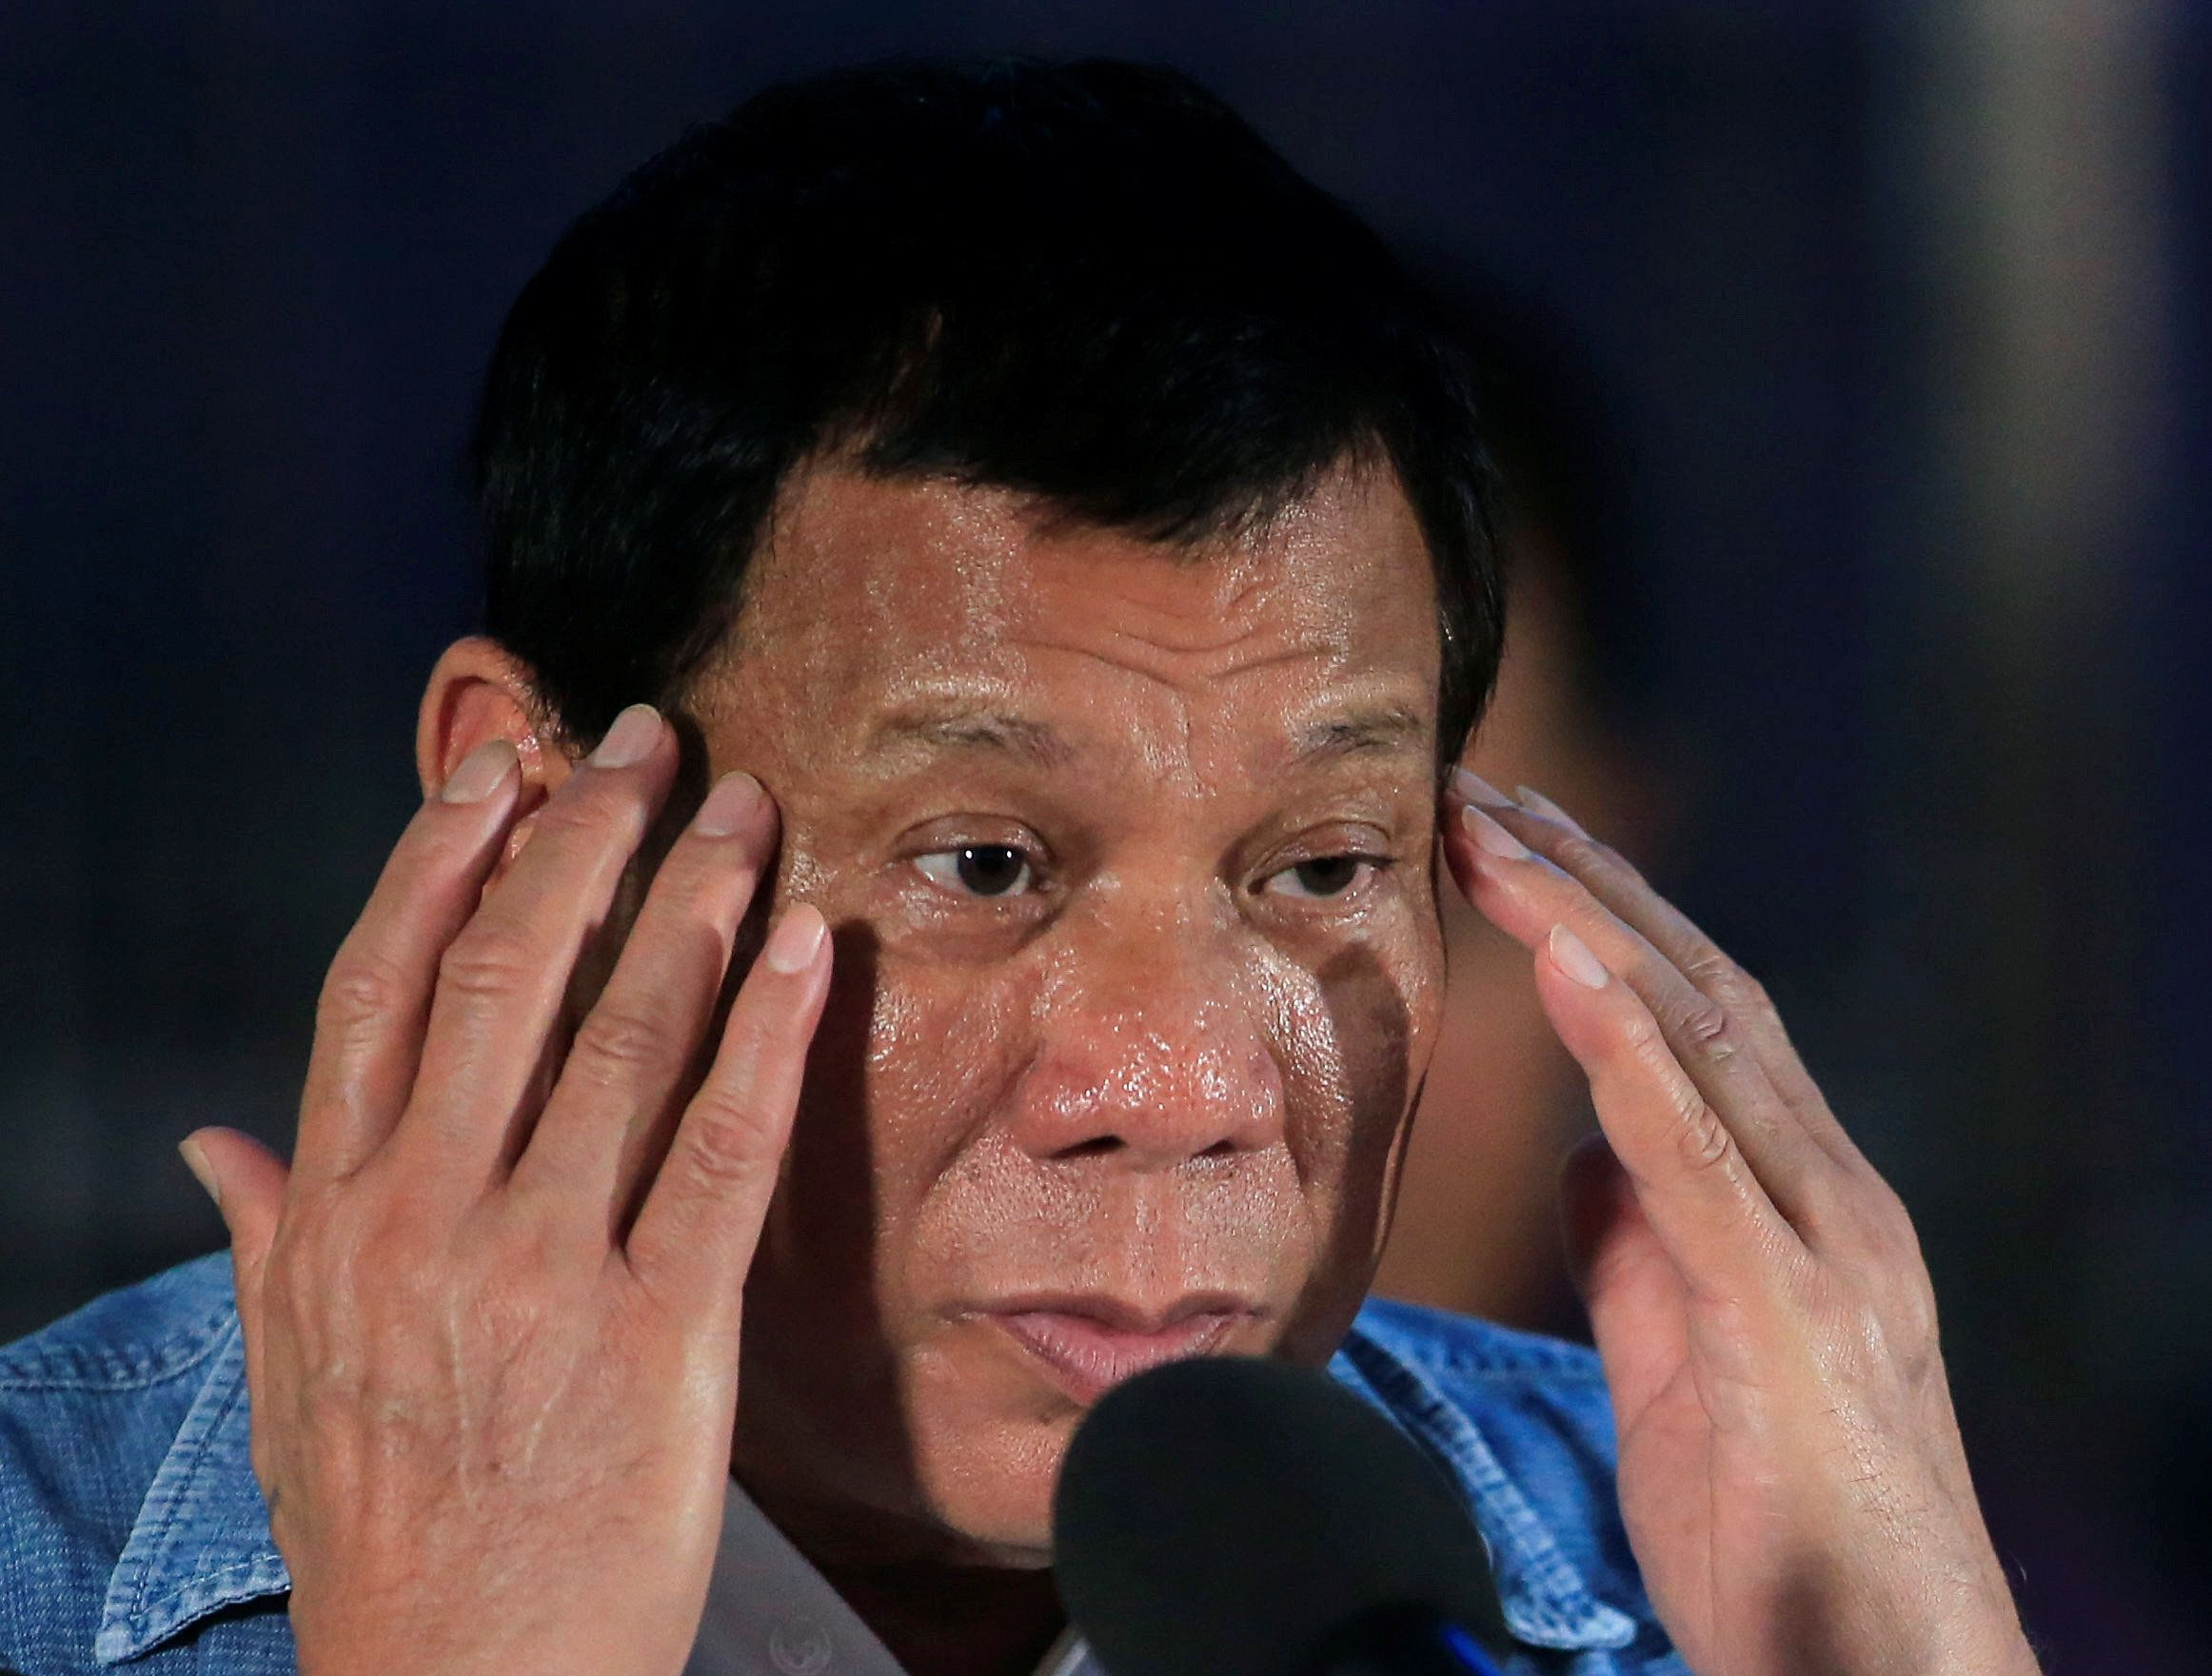 Philippines' President Rodrigo Duterte gestures while delivering a speech during his visit at the Iligan City National School of Fisheries evacuation center in Iligan City, Philippines June 20, 2017. REUTERS/Romeo Ranoco